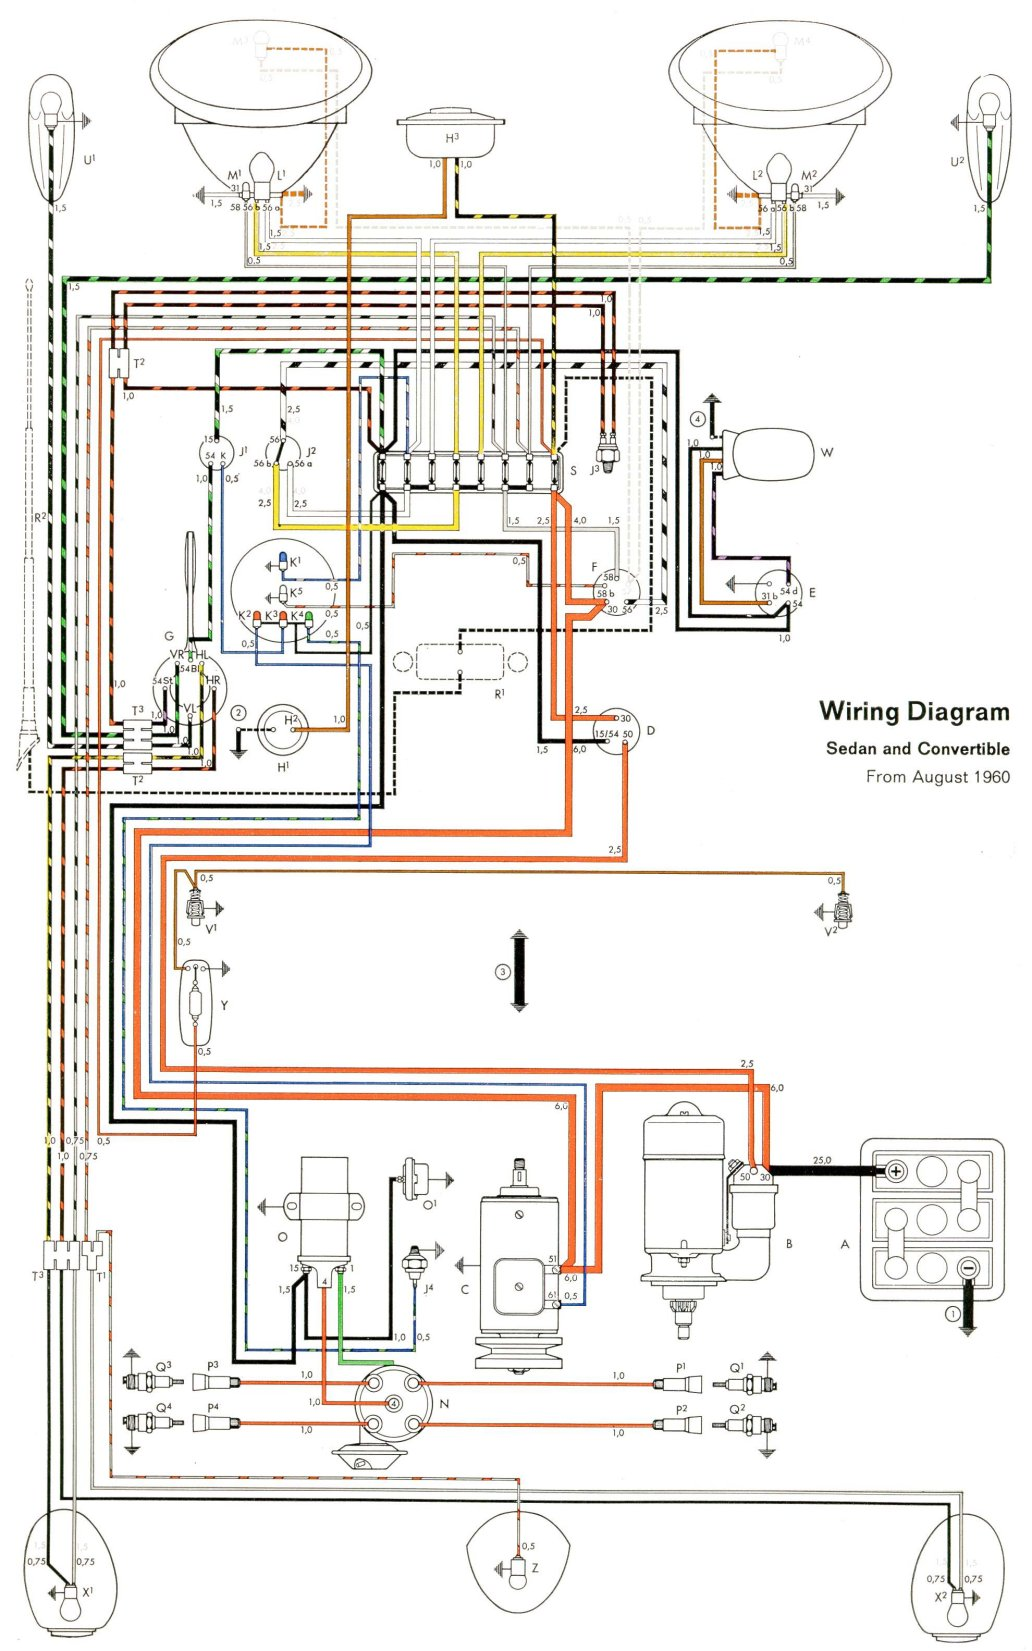 bug_61 thesamba com type 1 wiring diagrams 1974 vw beetle wiring diagram at n-0.co